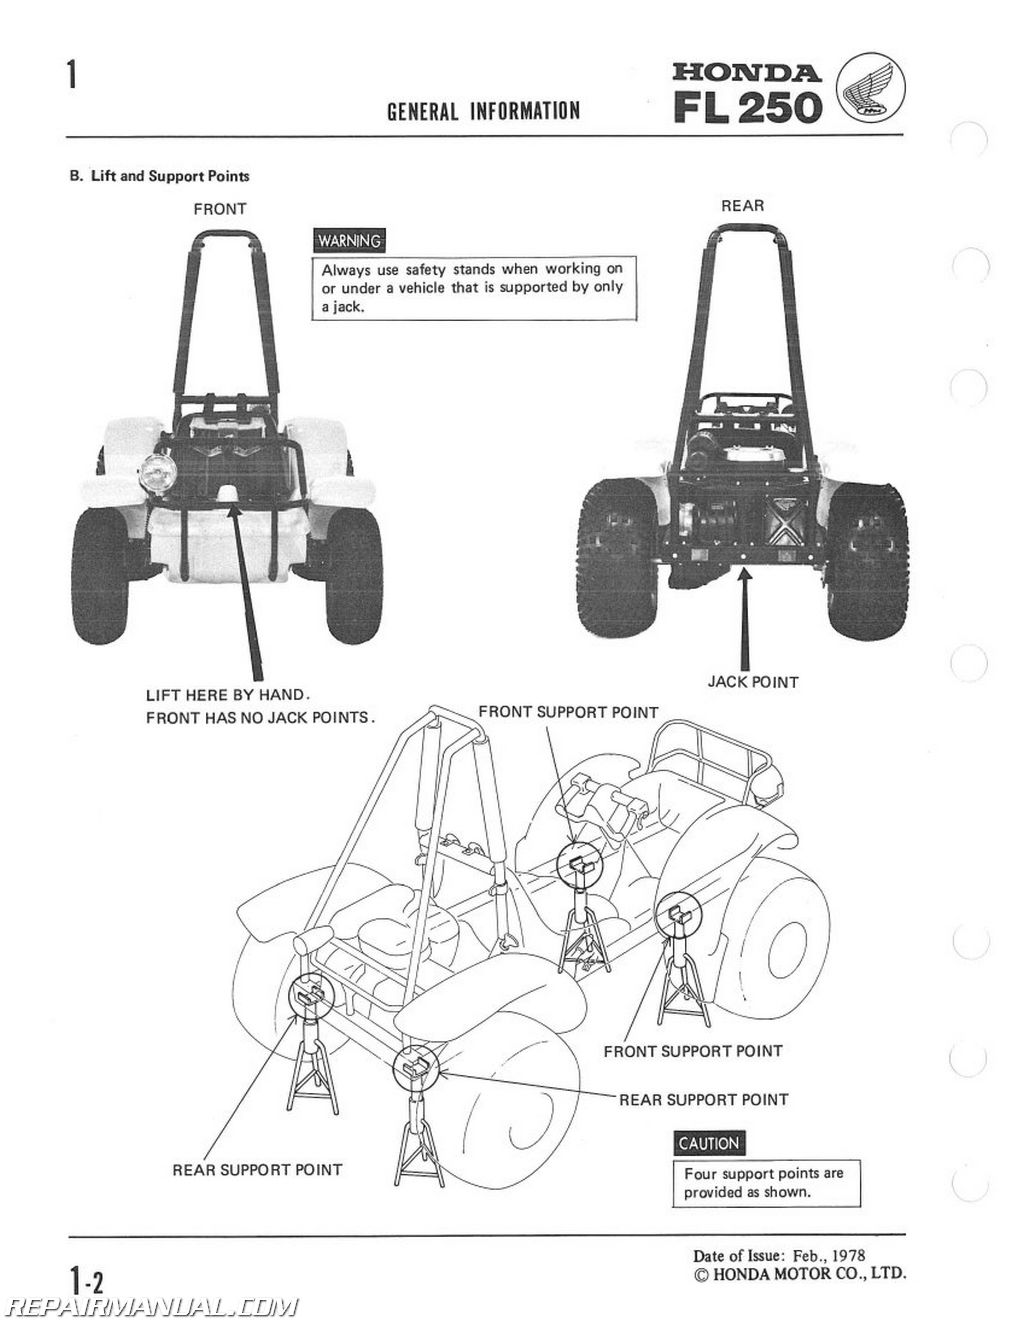 hight resolution of 1977 1984 fl250 honda odyssey service manual 2012 honda odyssey wiring diagram for a honda odyssey atv wiring diagram